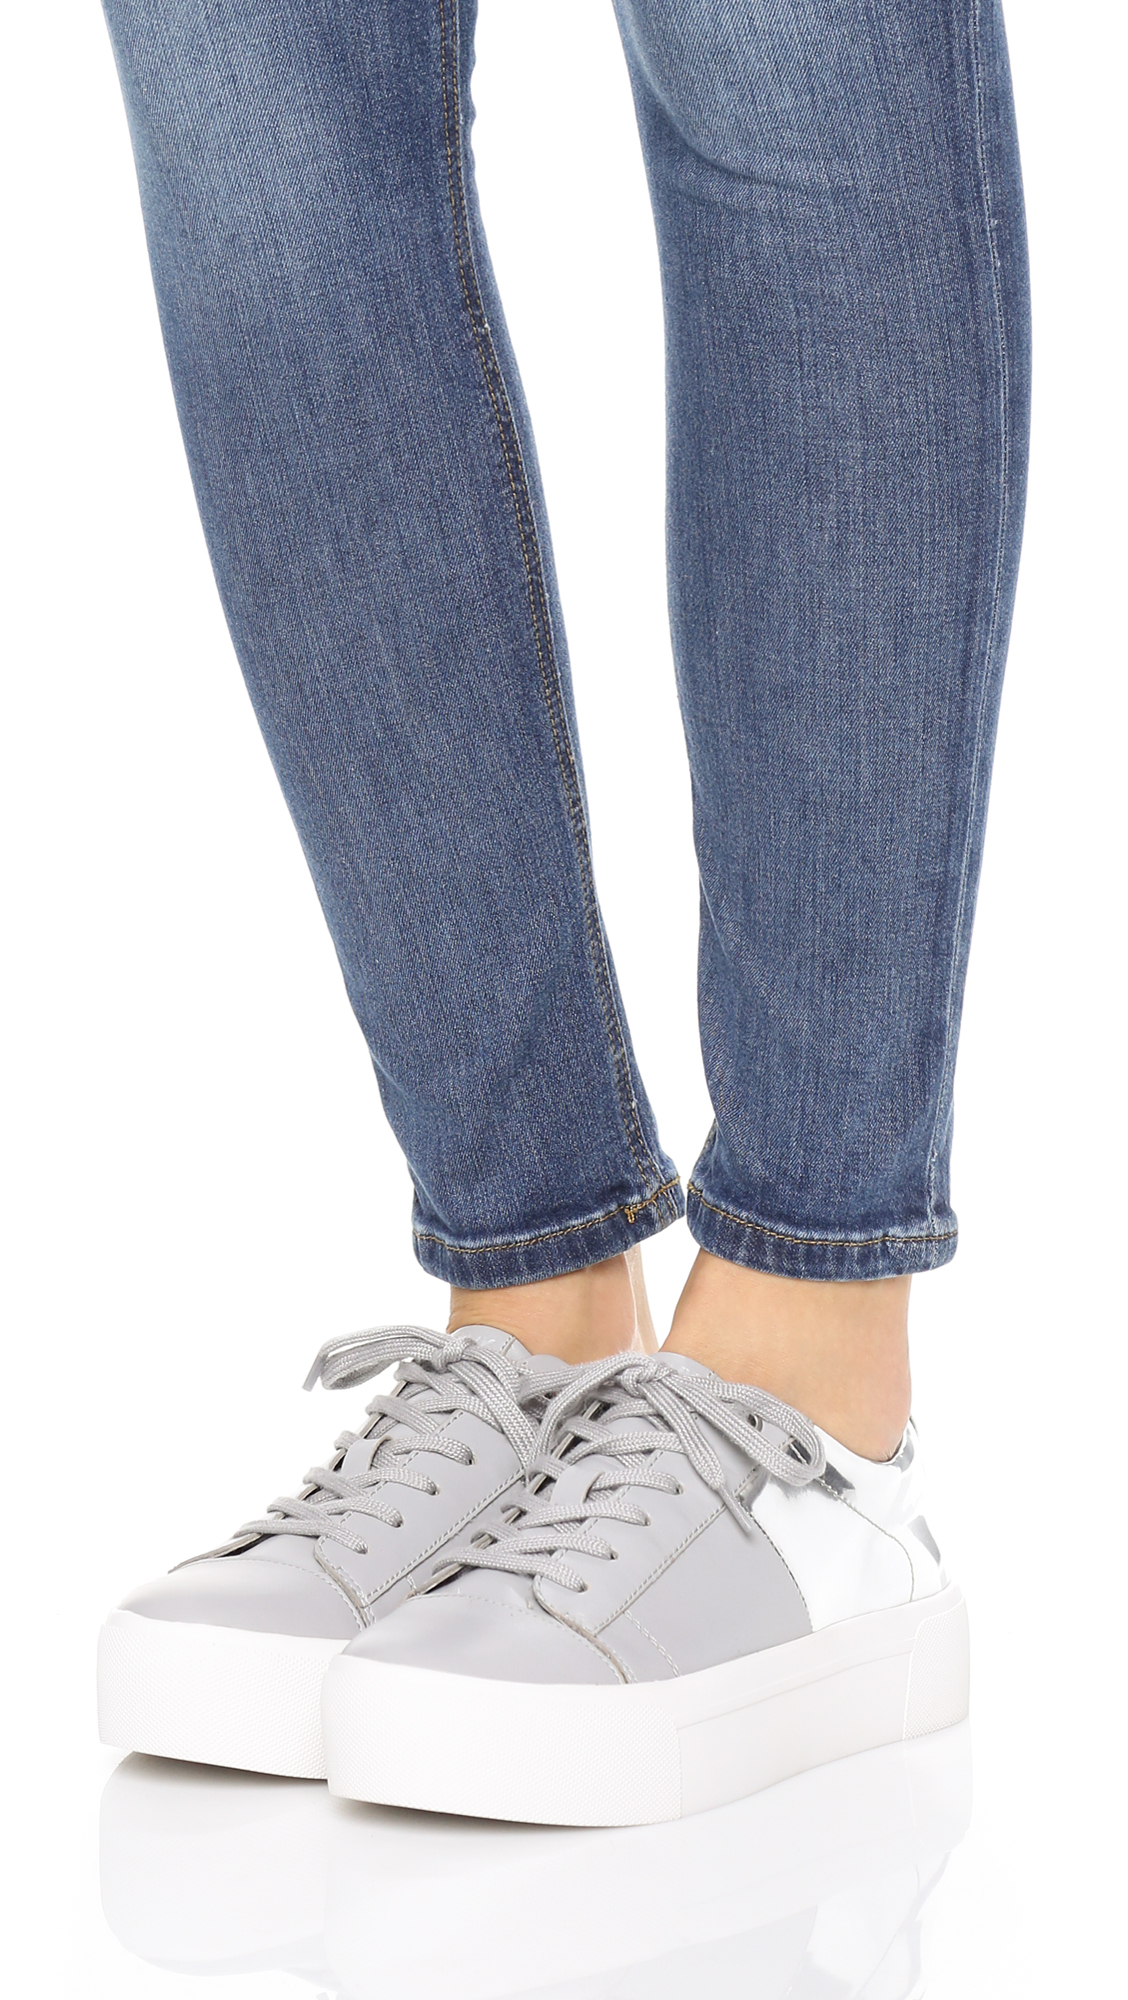 DKNY Leather Bari Platform Lace Up Sneakers in Cool Grey/Silver (Grey)